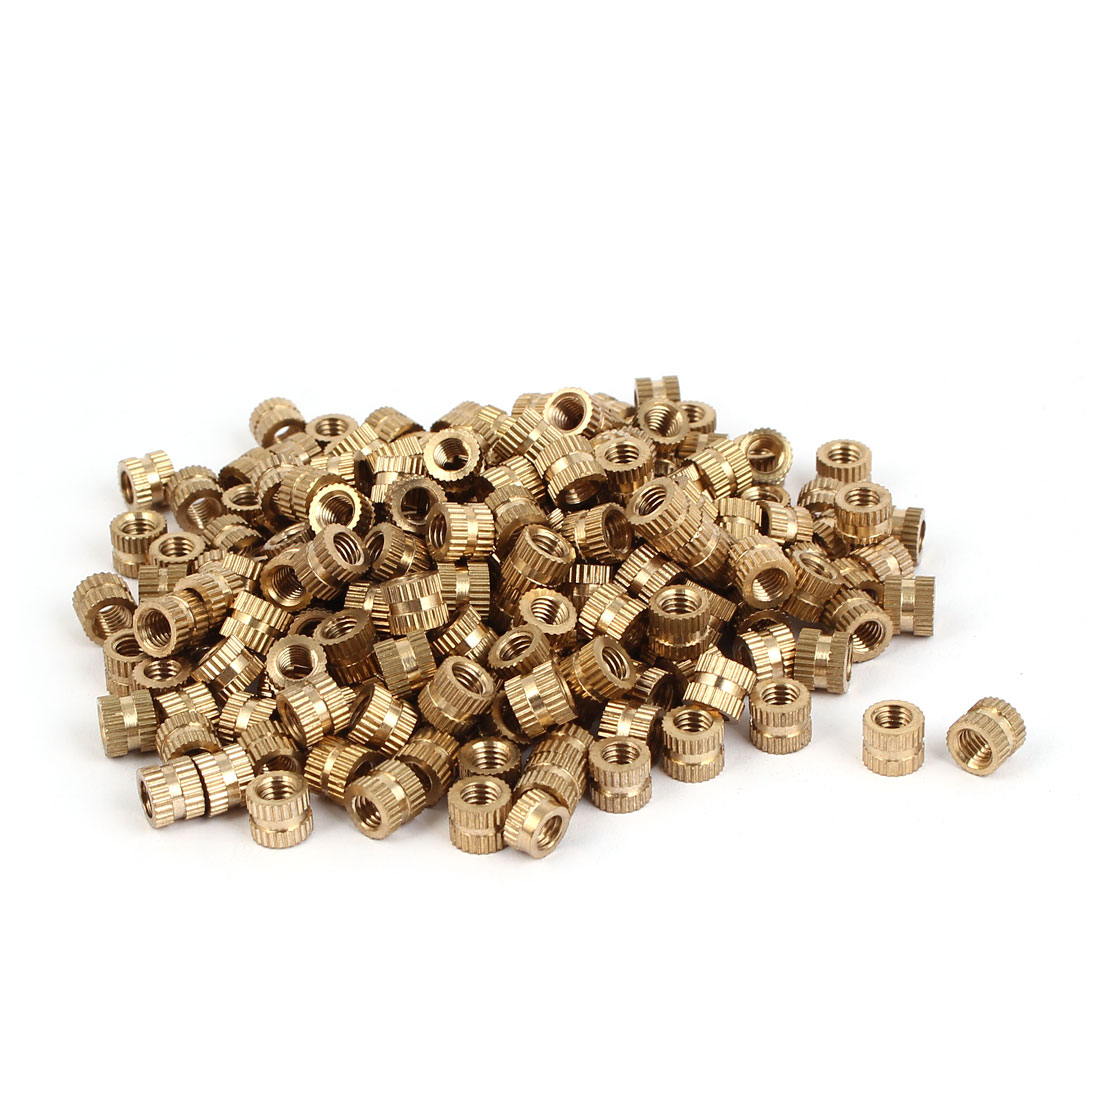 M5 x 6mm Brass Cylinder Knurled Threaded Round Insert Embedded Nuts 200PCS